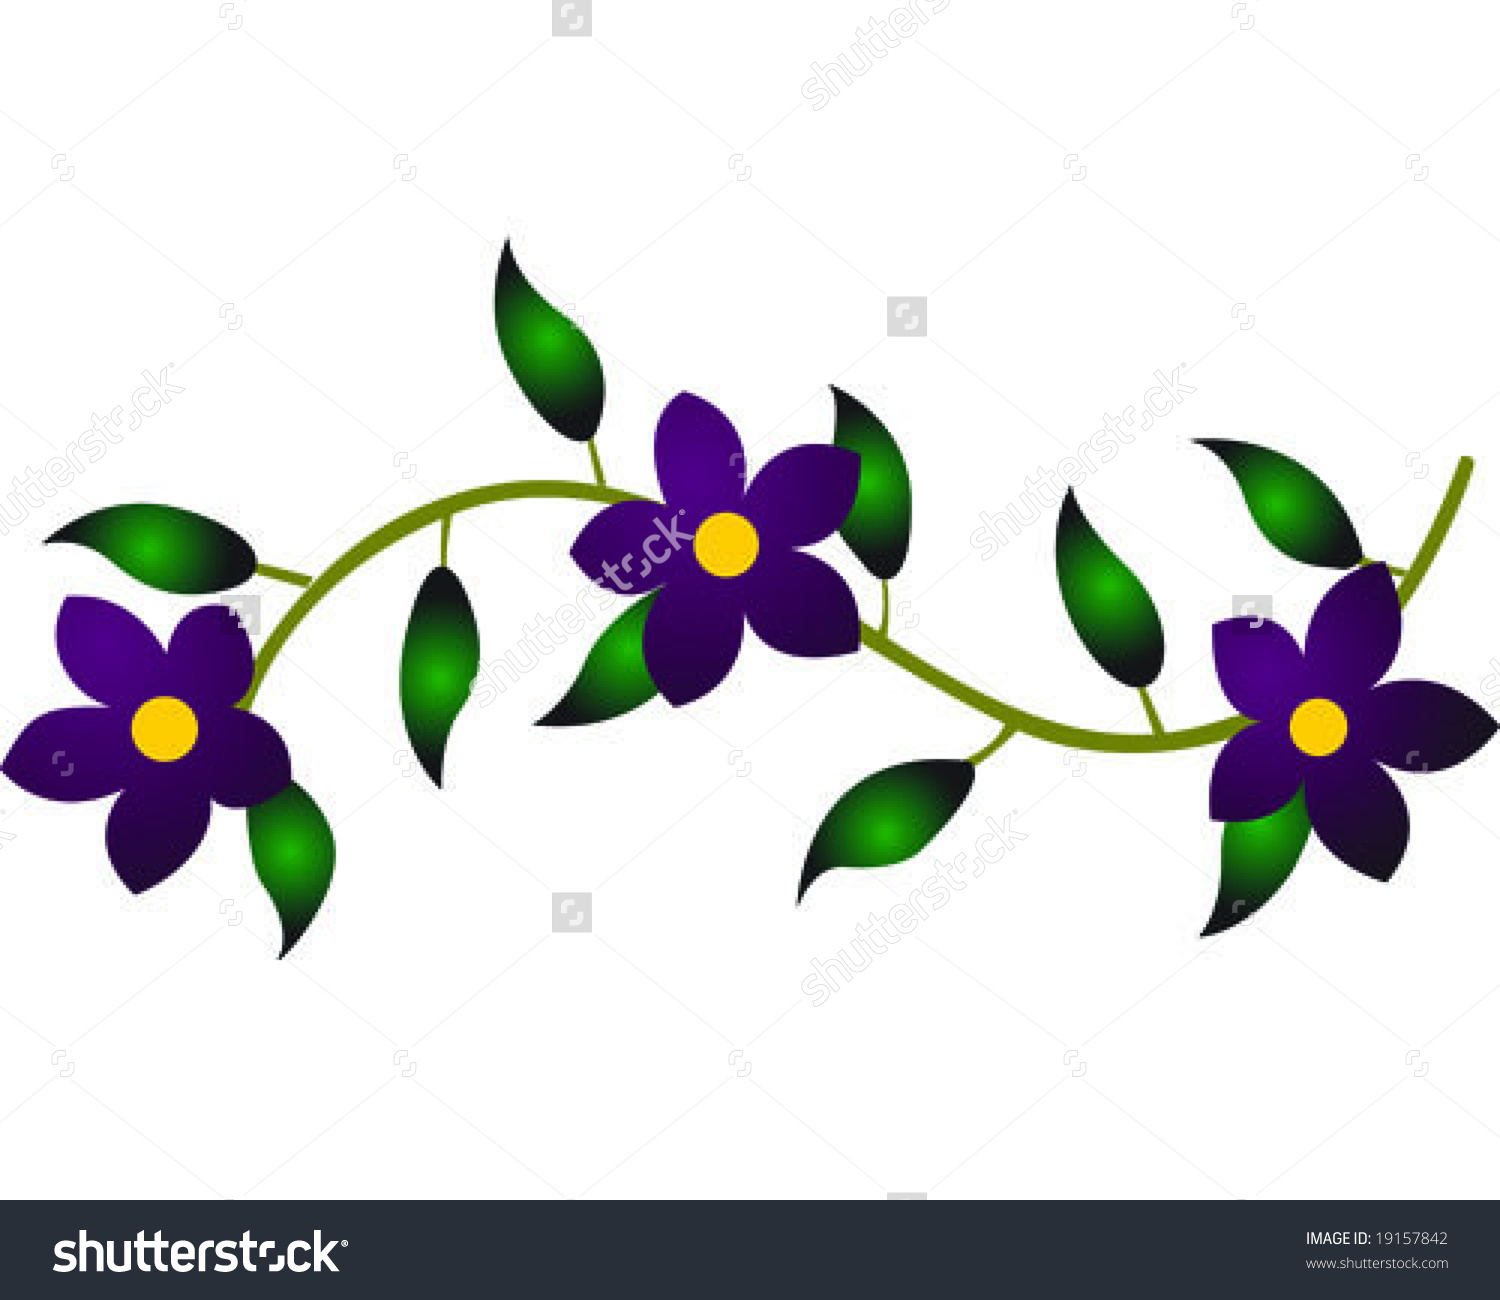 Purple Flower Vine Vector Illustration Stock Vector 19157842.